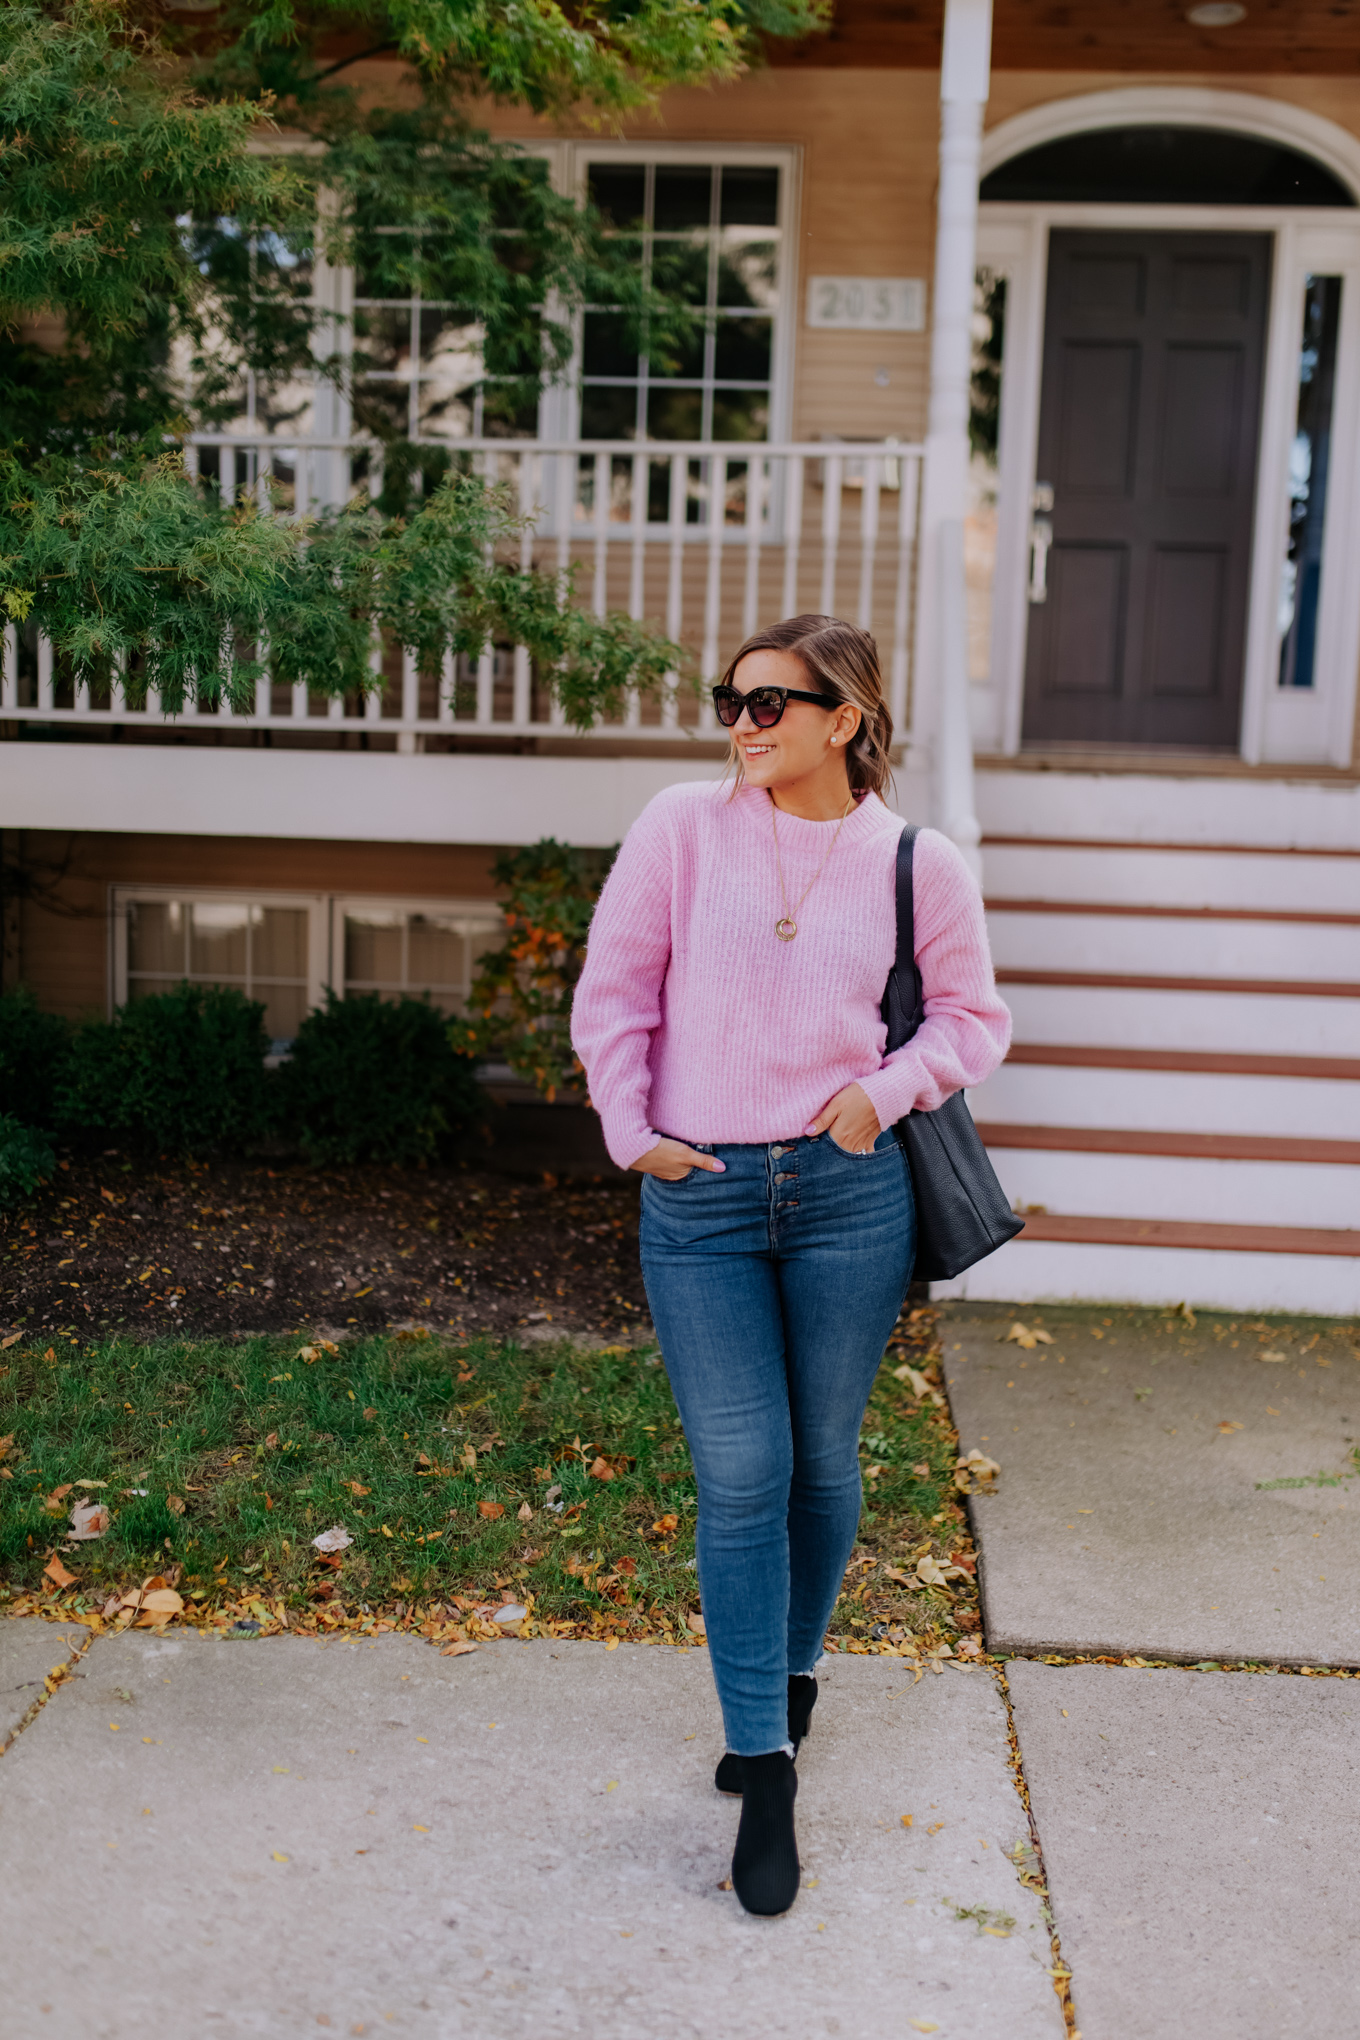 How To Wear Ankle Boots For Petites